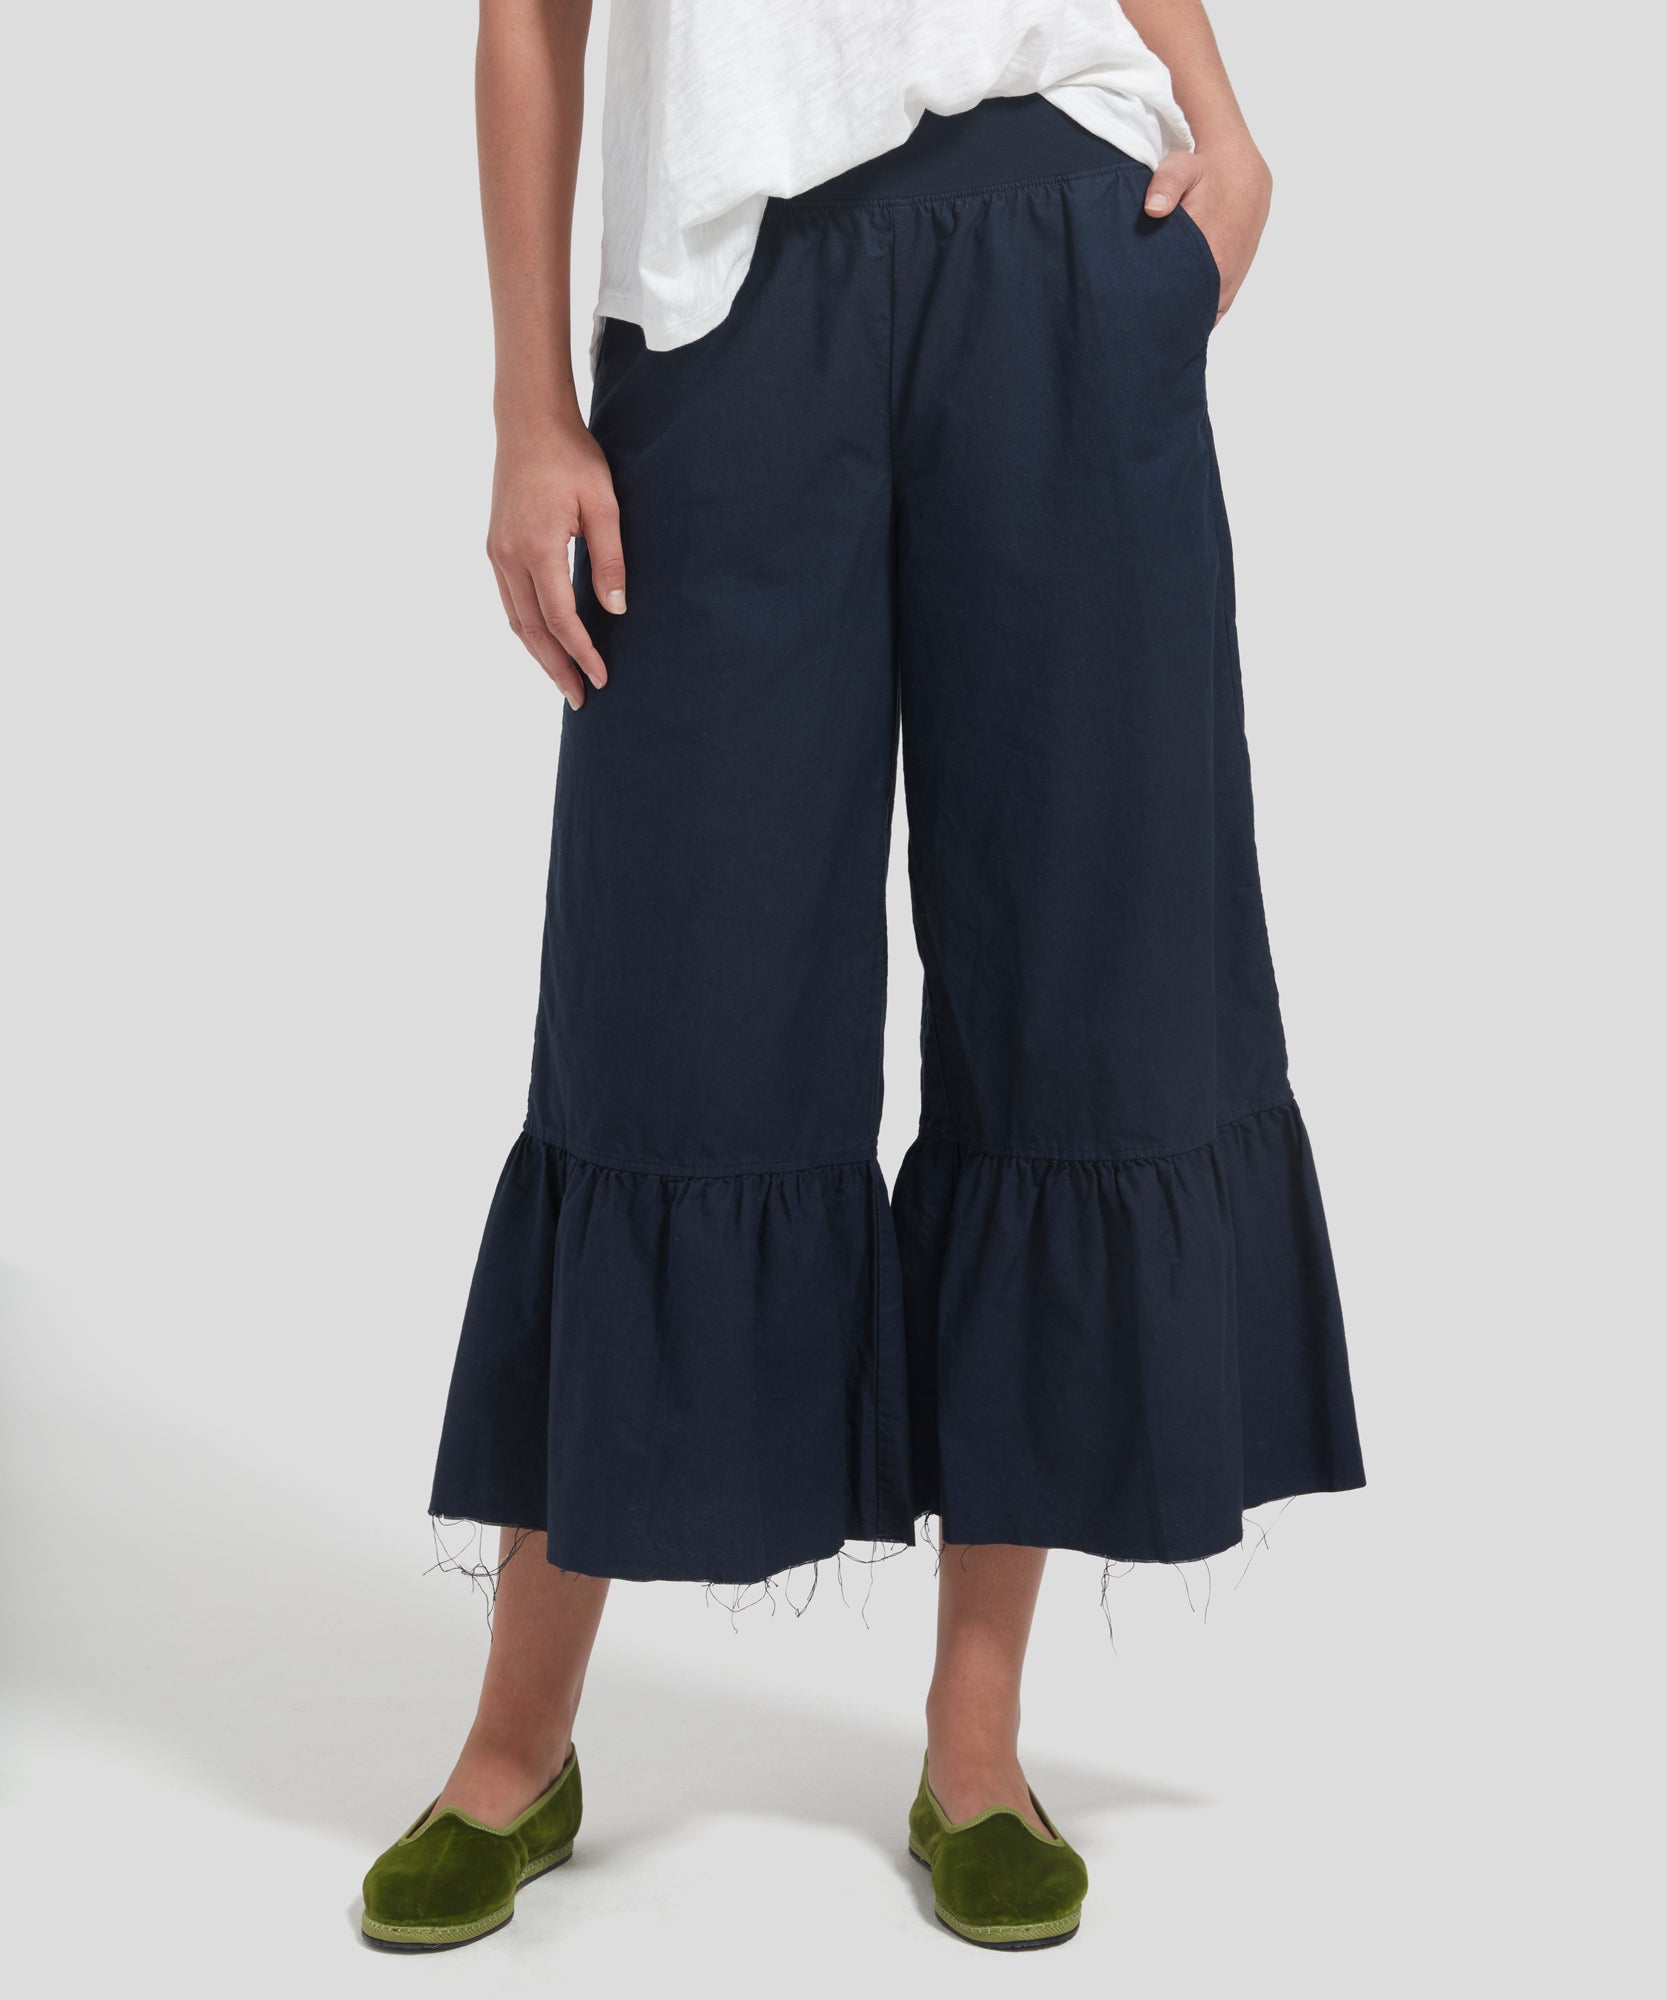 ATM Cotton Oxford Flared Pants